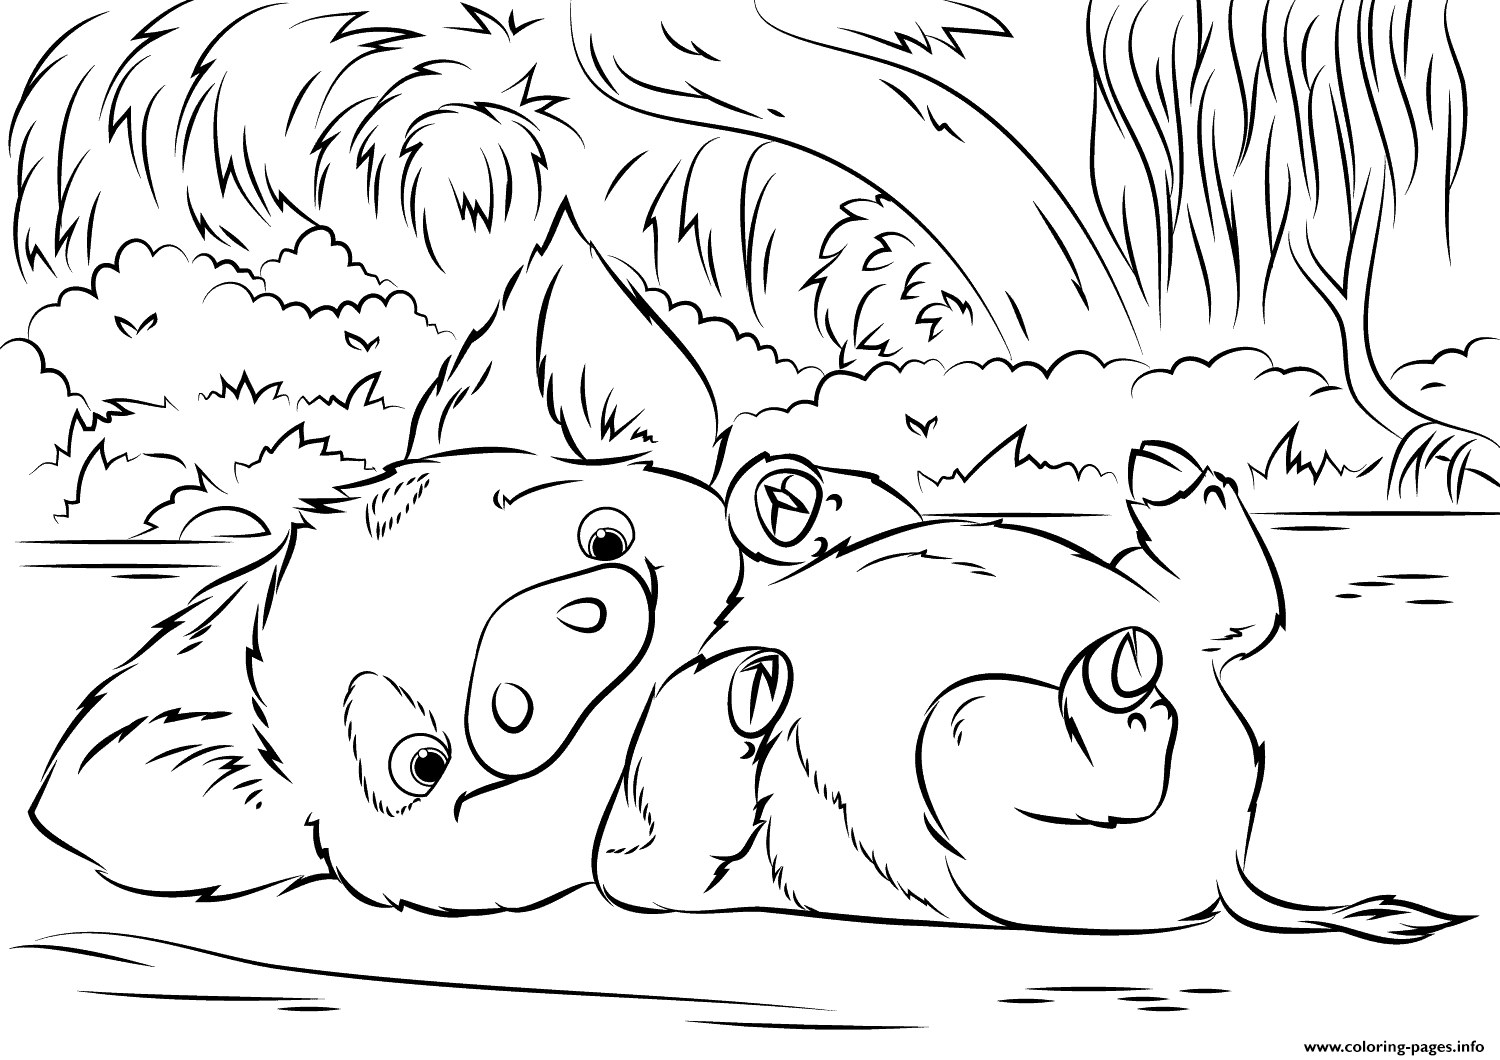 Pua Pet Pig From Moana Disney  coloring pages